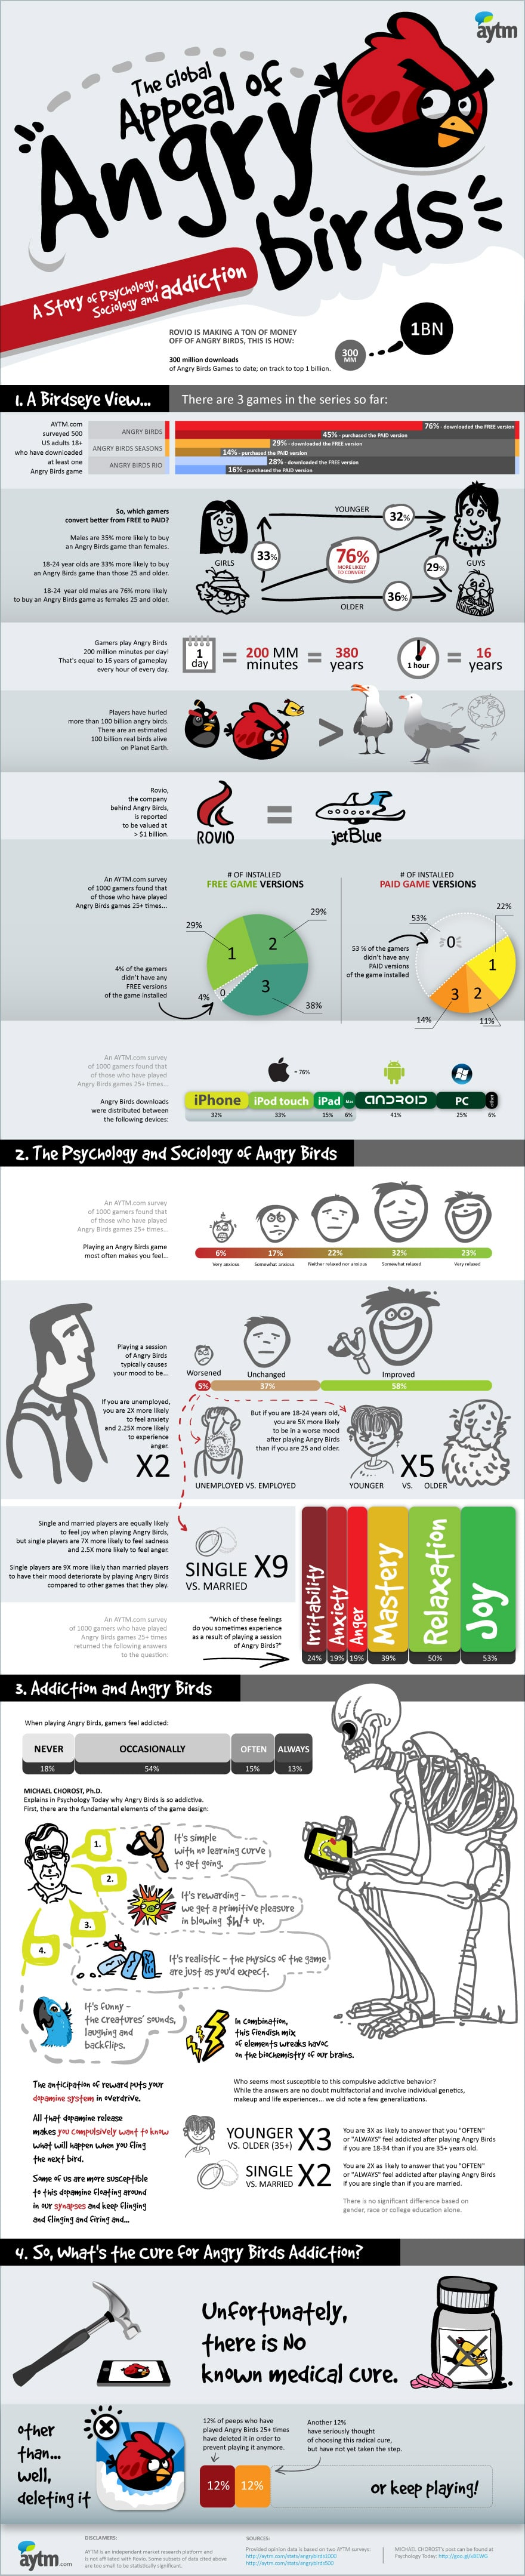 The Angry Birds Addiction Explained [Infographic]